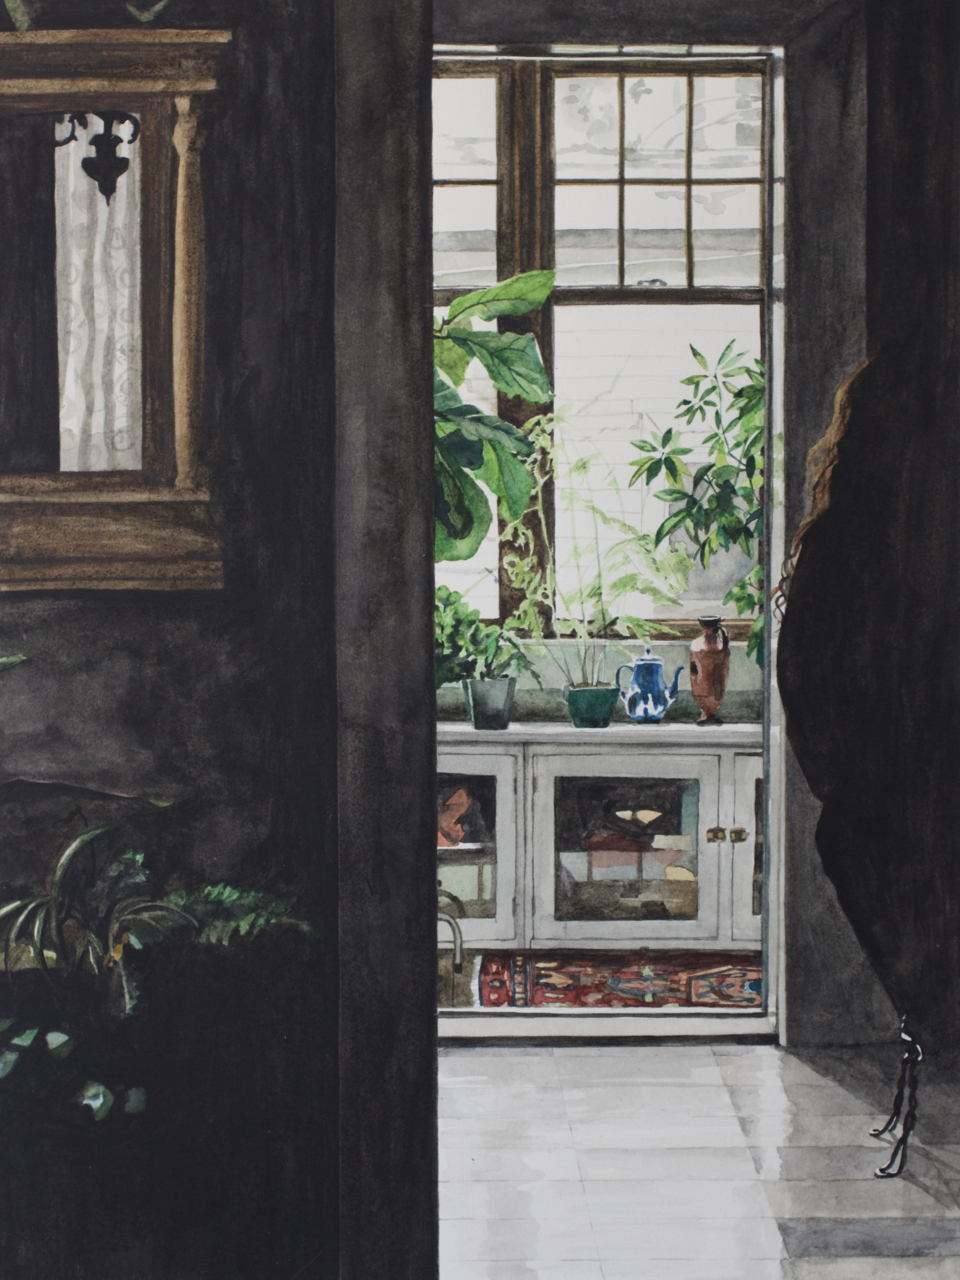 Heather Goodchild, Early evening kitchen, 2016,watercolor on paper, 12 x 9 inches.